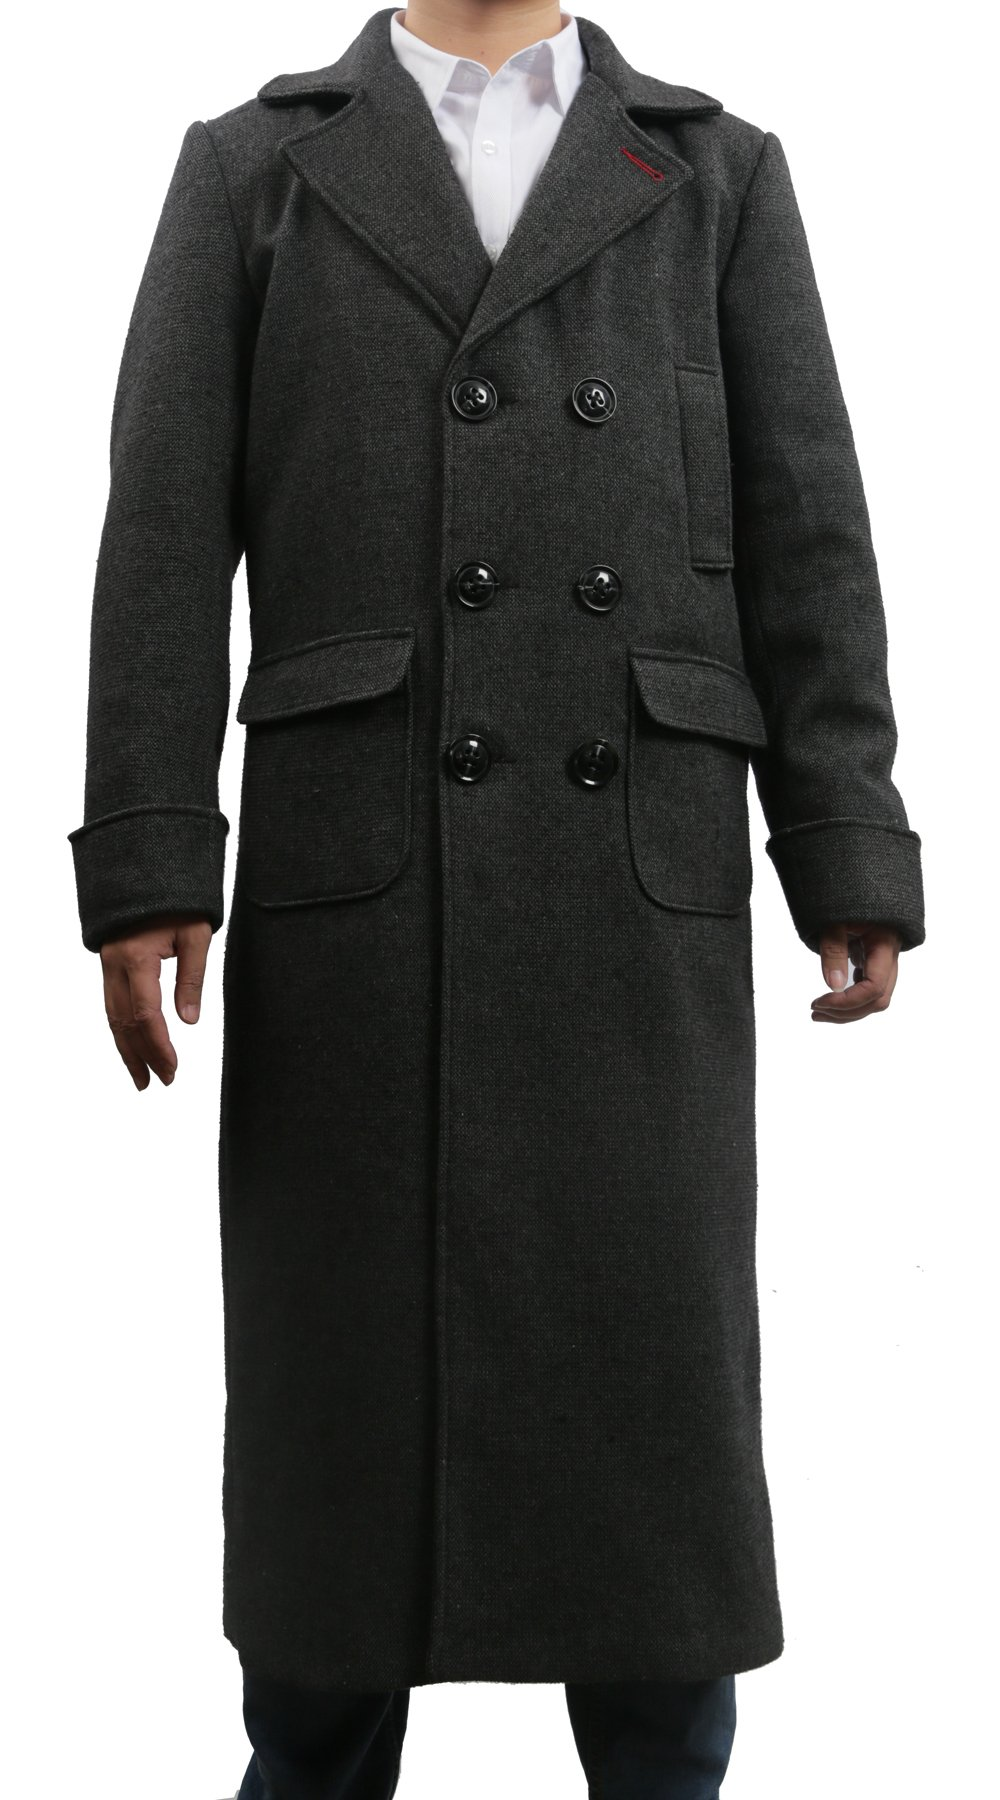 Stylish Detective Cosplay Jacket Trench Coat Costume for Adult Halloween XX-Large